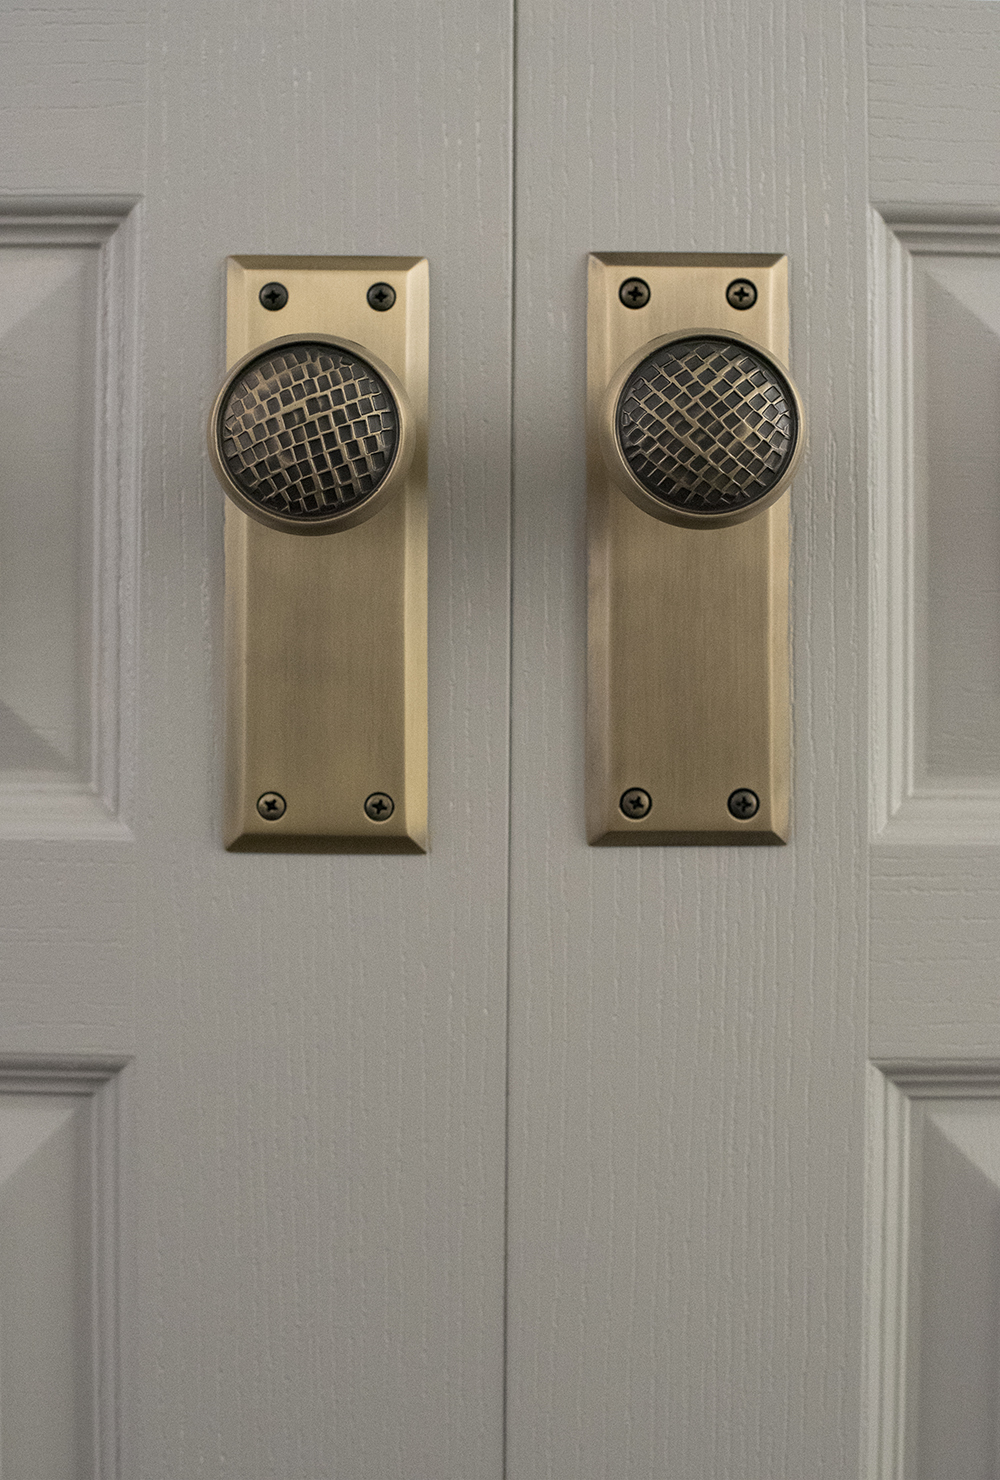 Selecting My Interior Doors & Hardware Style - roomfortuesday.com